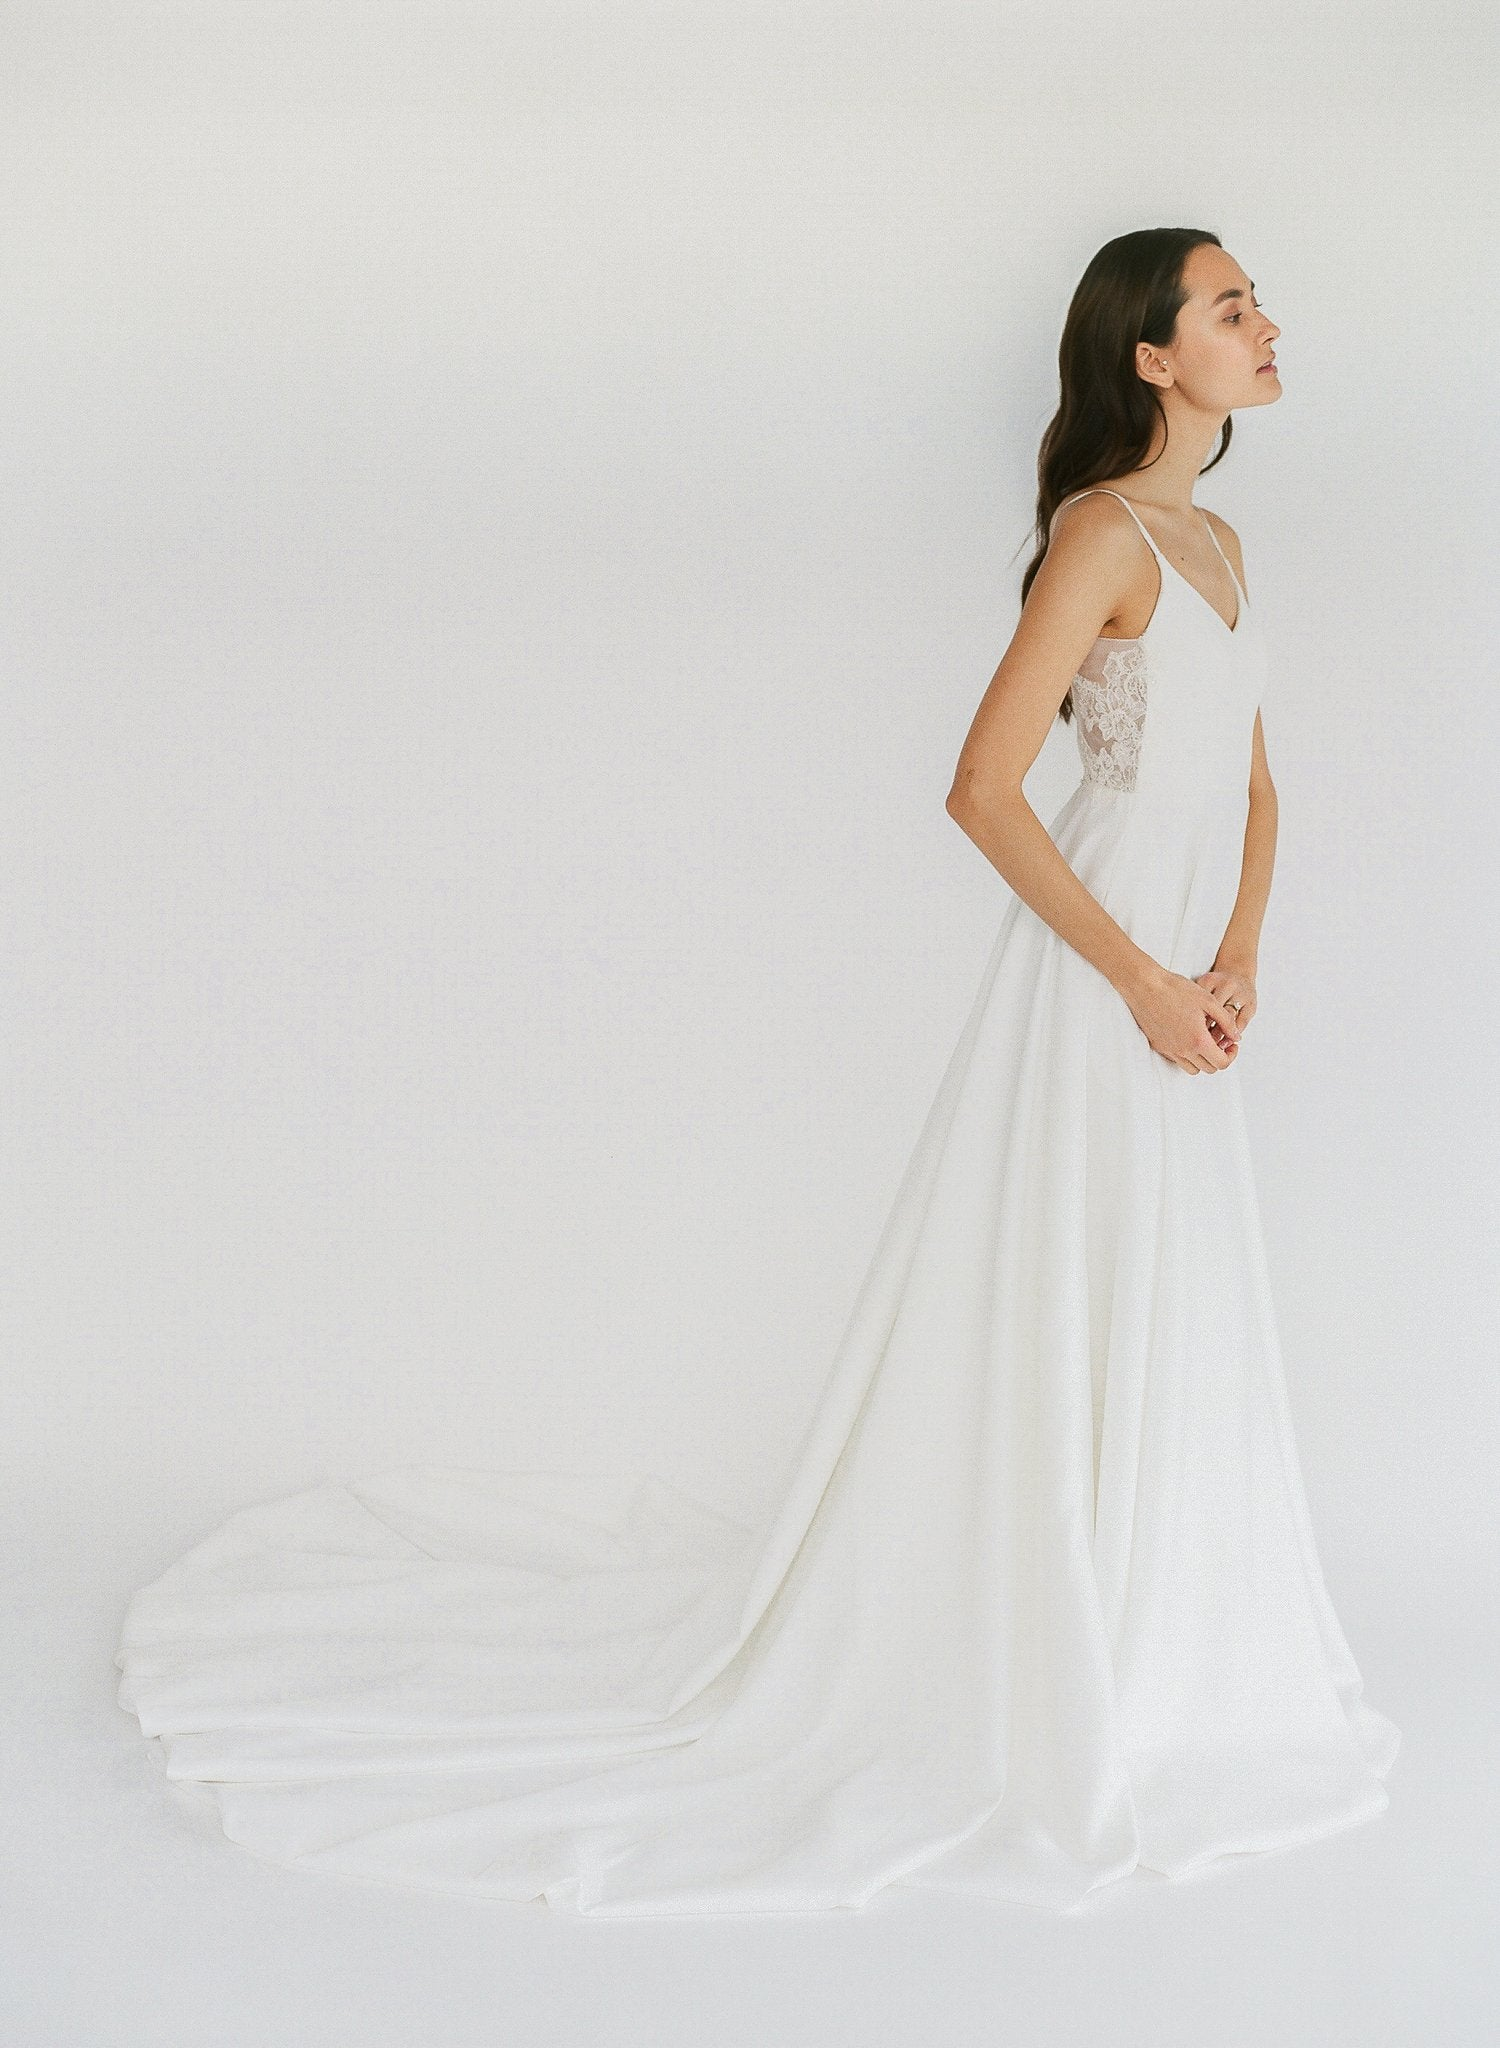 A simple low-back wedding dress in textured crepe fabric with appliqué lace and pockets